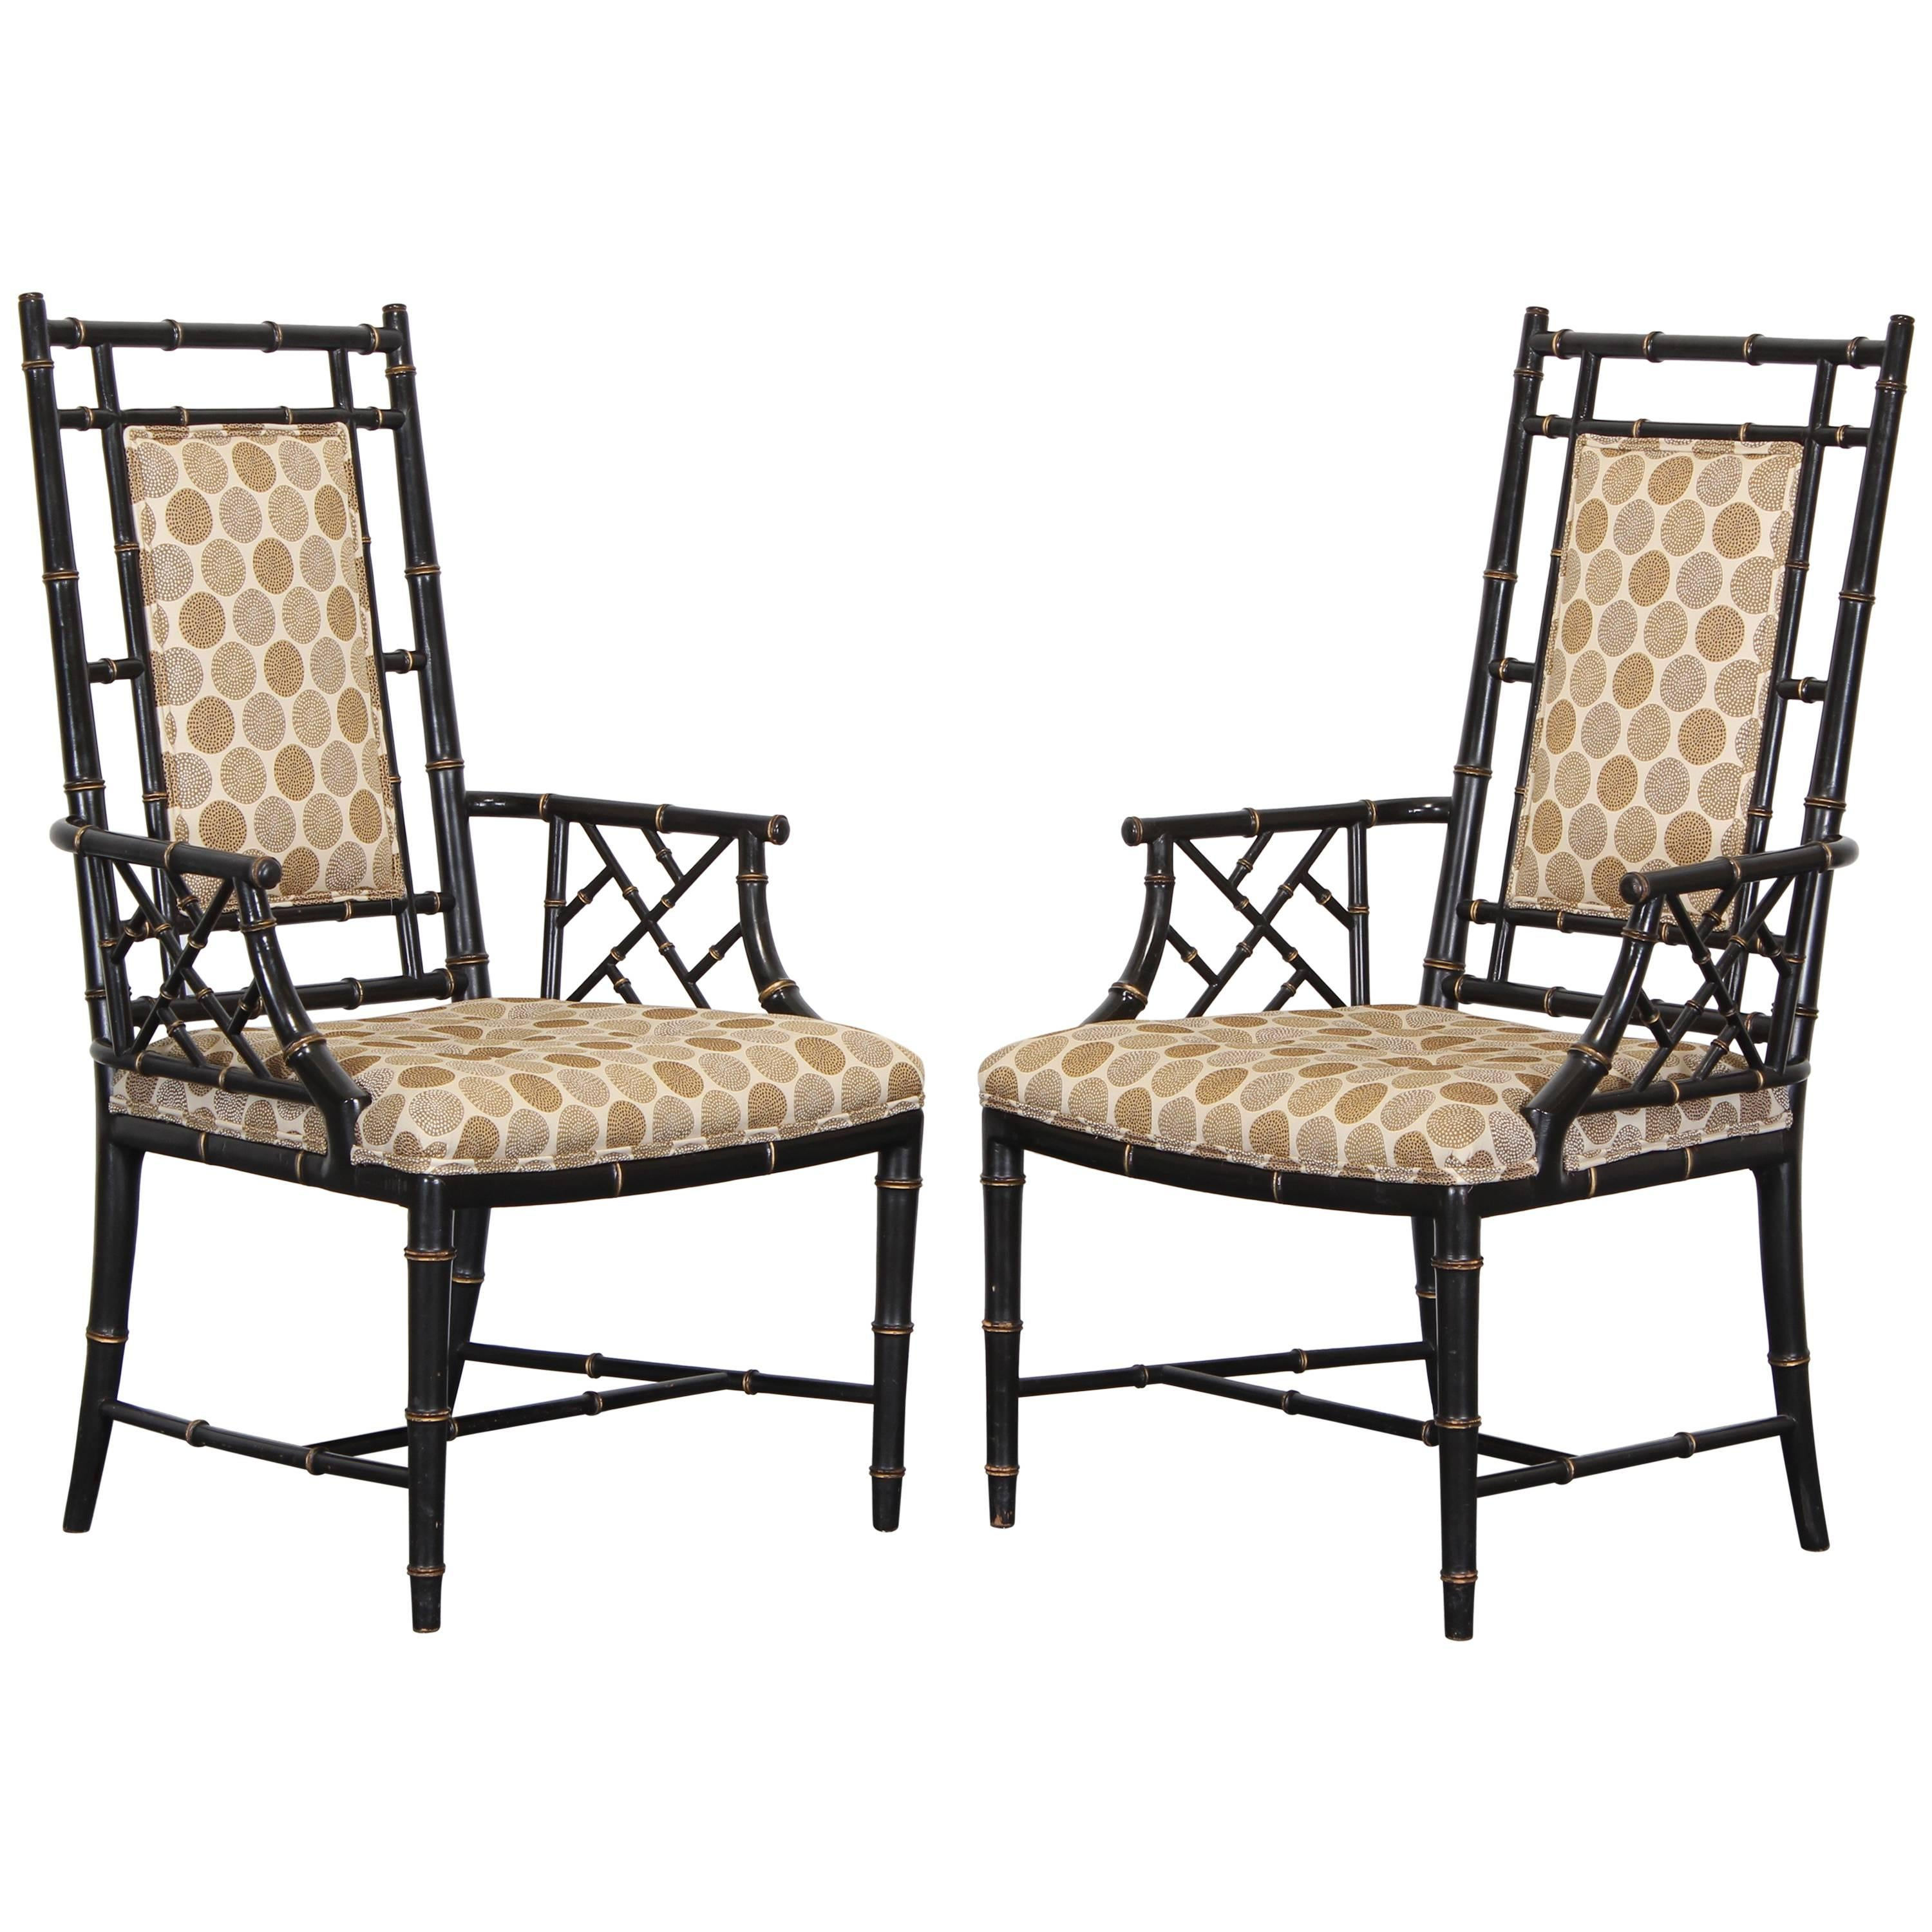 Chinese Chippendale Ebonized Faux Bamboo Chairs, 1960 1